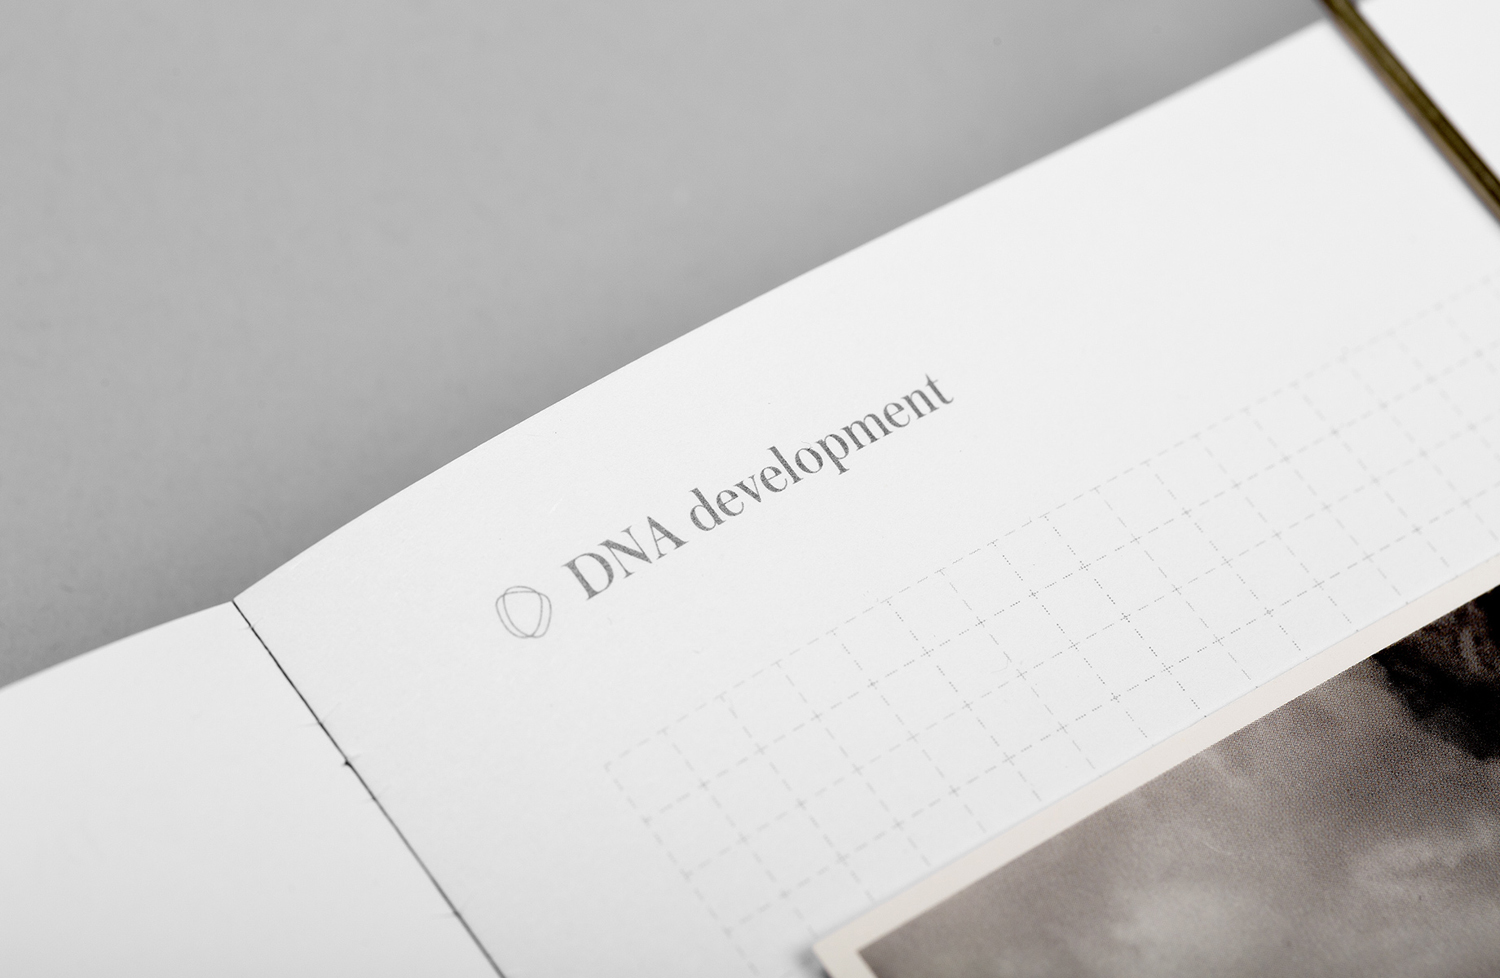 Brand identity and notebook for real estate investment and development business DNA development by Face